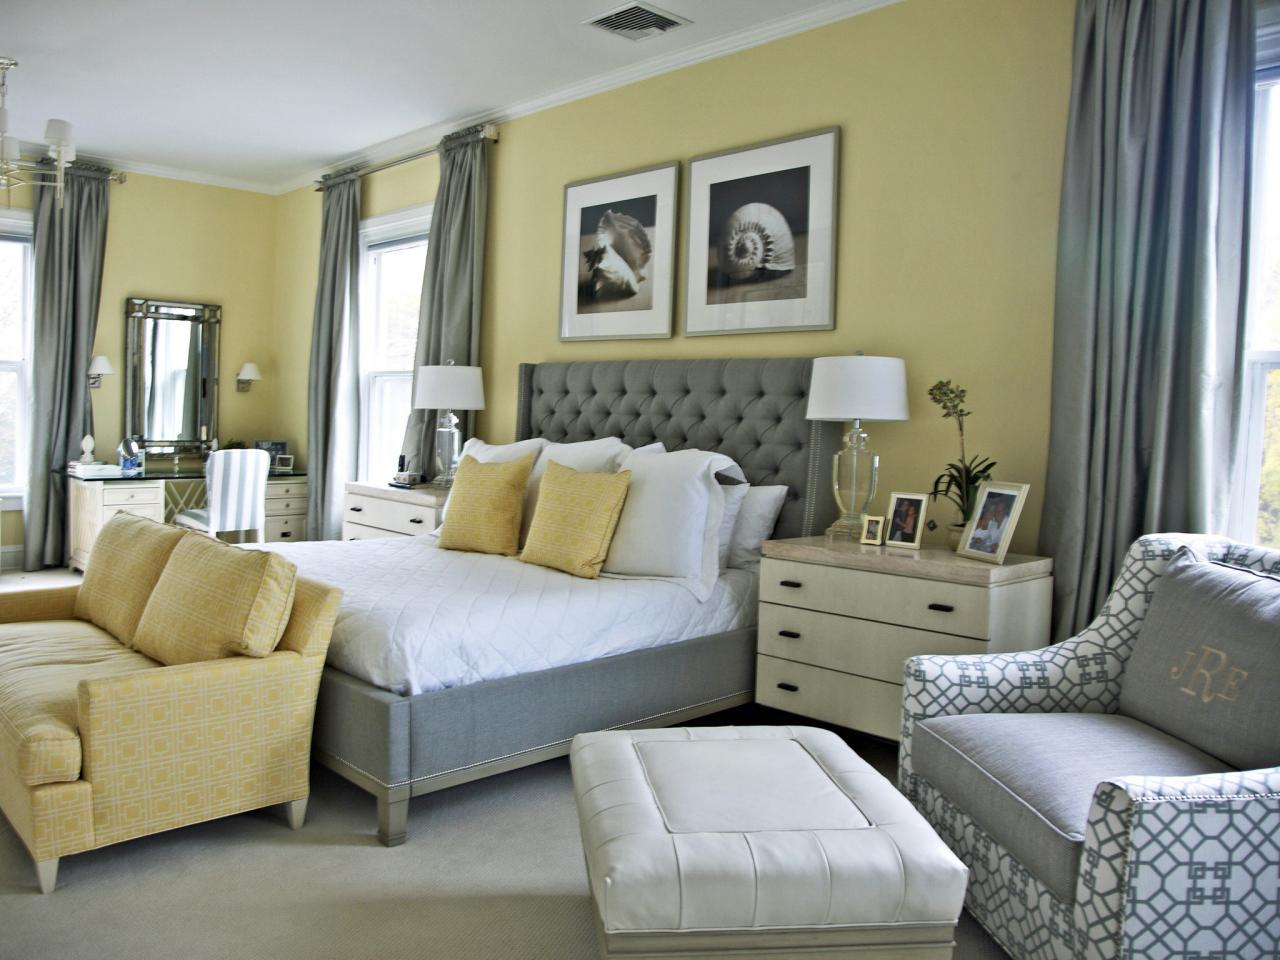 How to choose the best color schemes for bedrooms ?